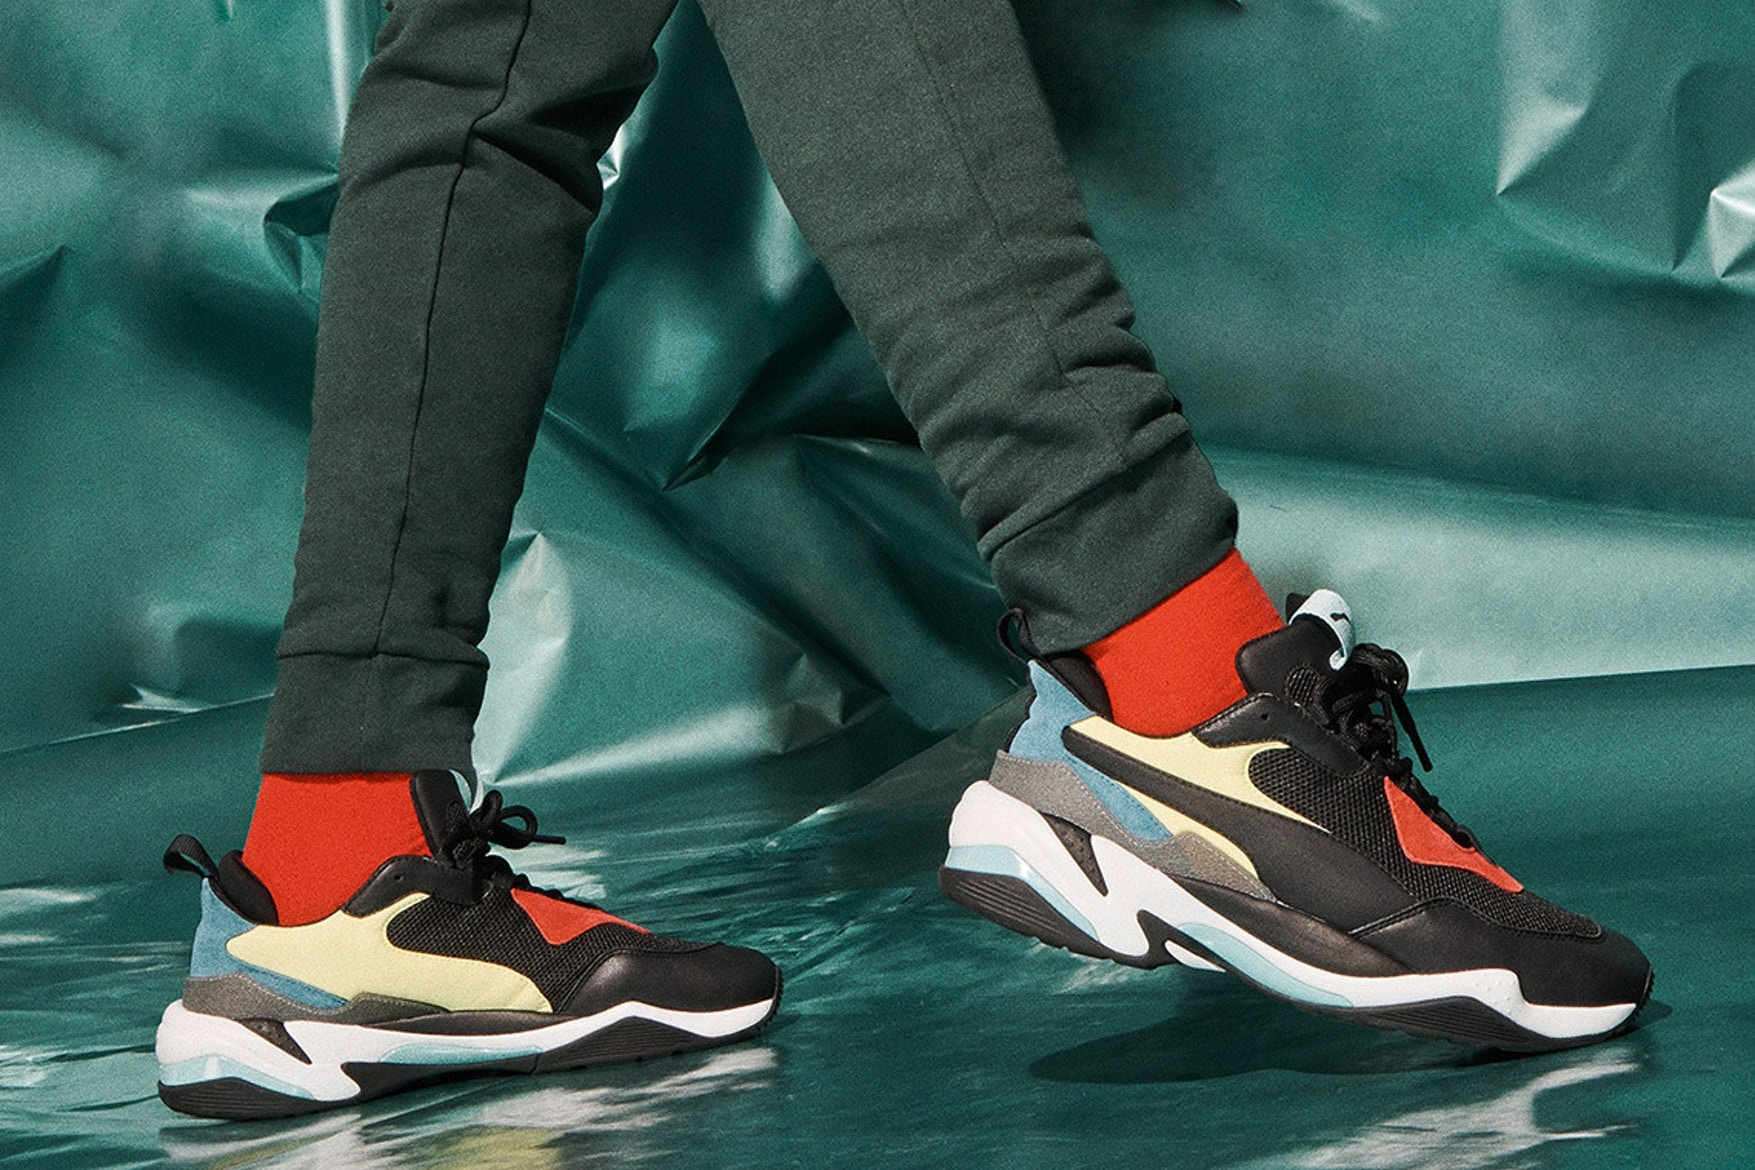 puma-thunder-spectra-official-release-5